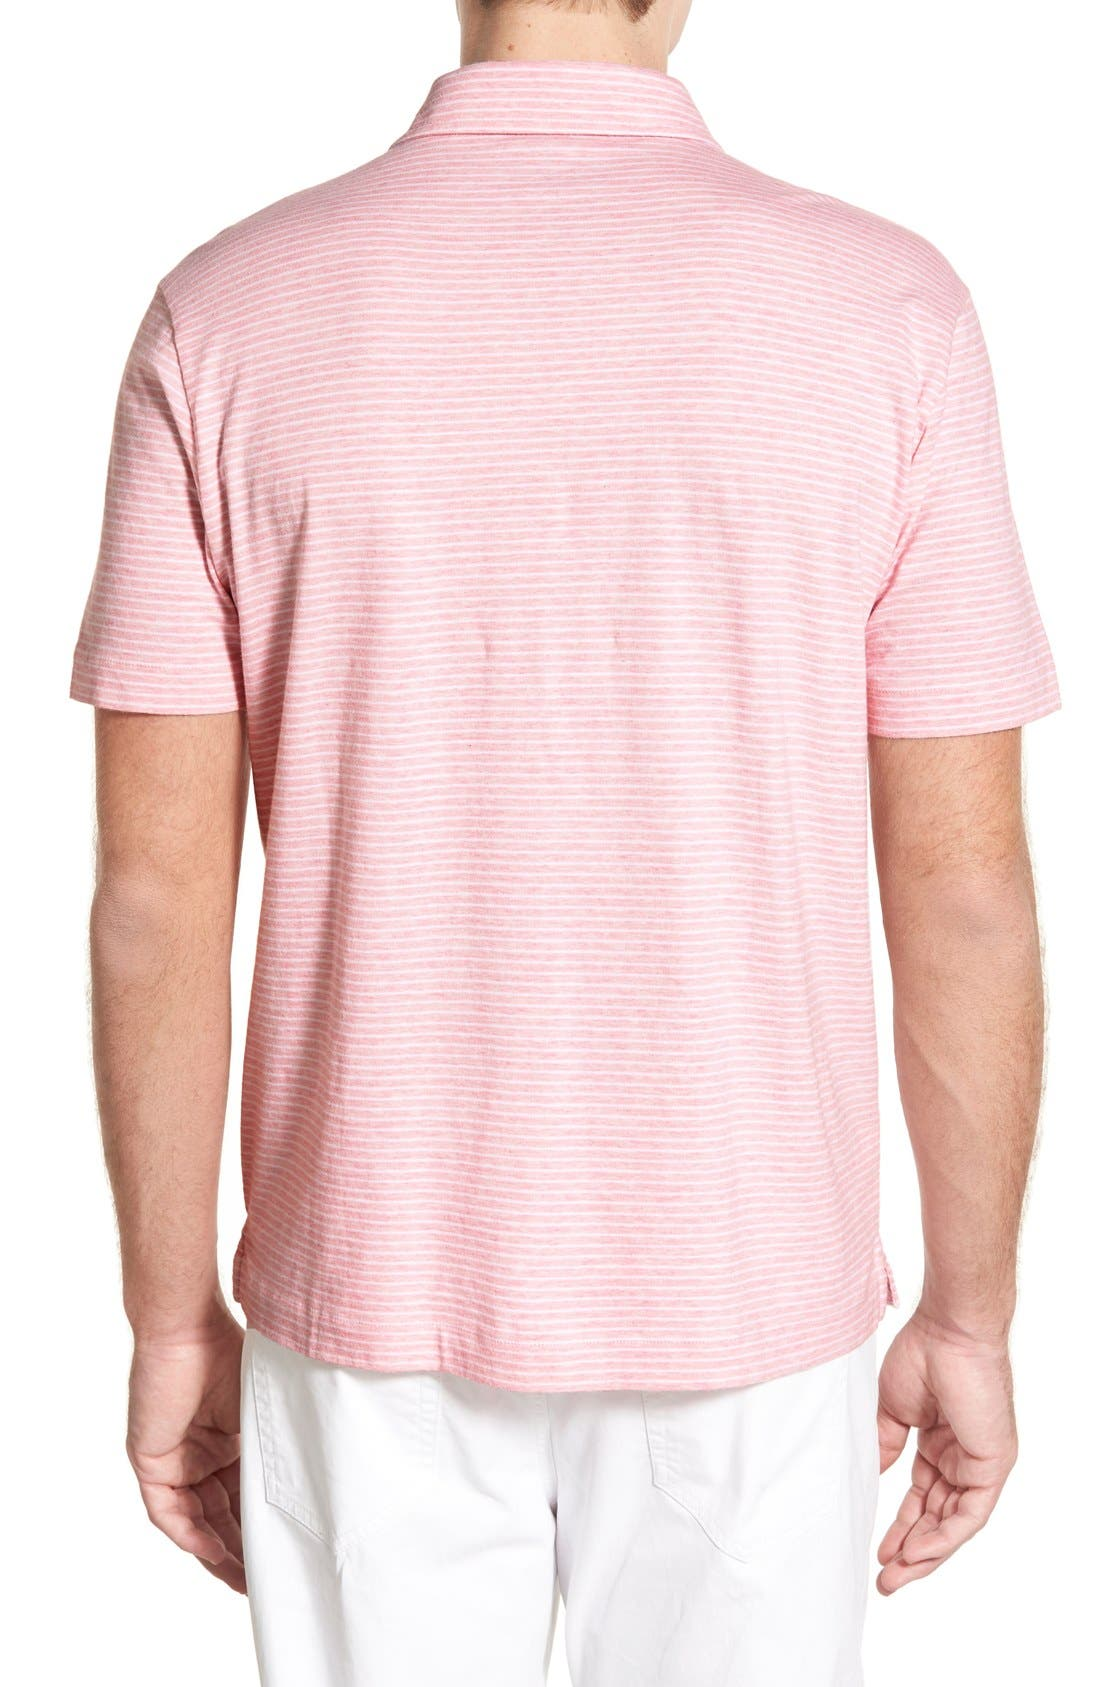 Alternate Image 2  - Vineyard Vines 'Feeder Stripe' Pima Cotton Polo